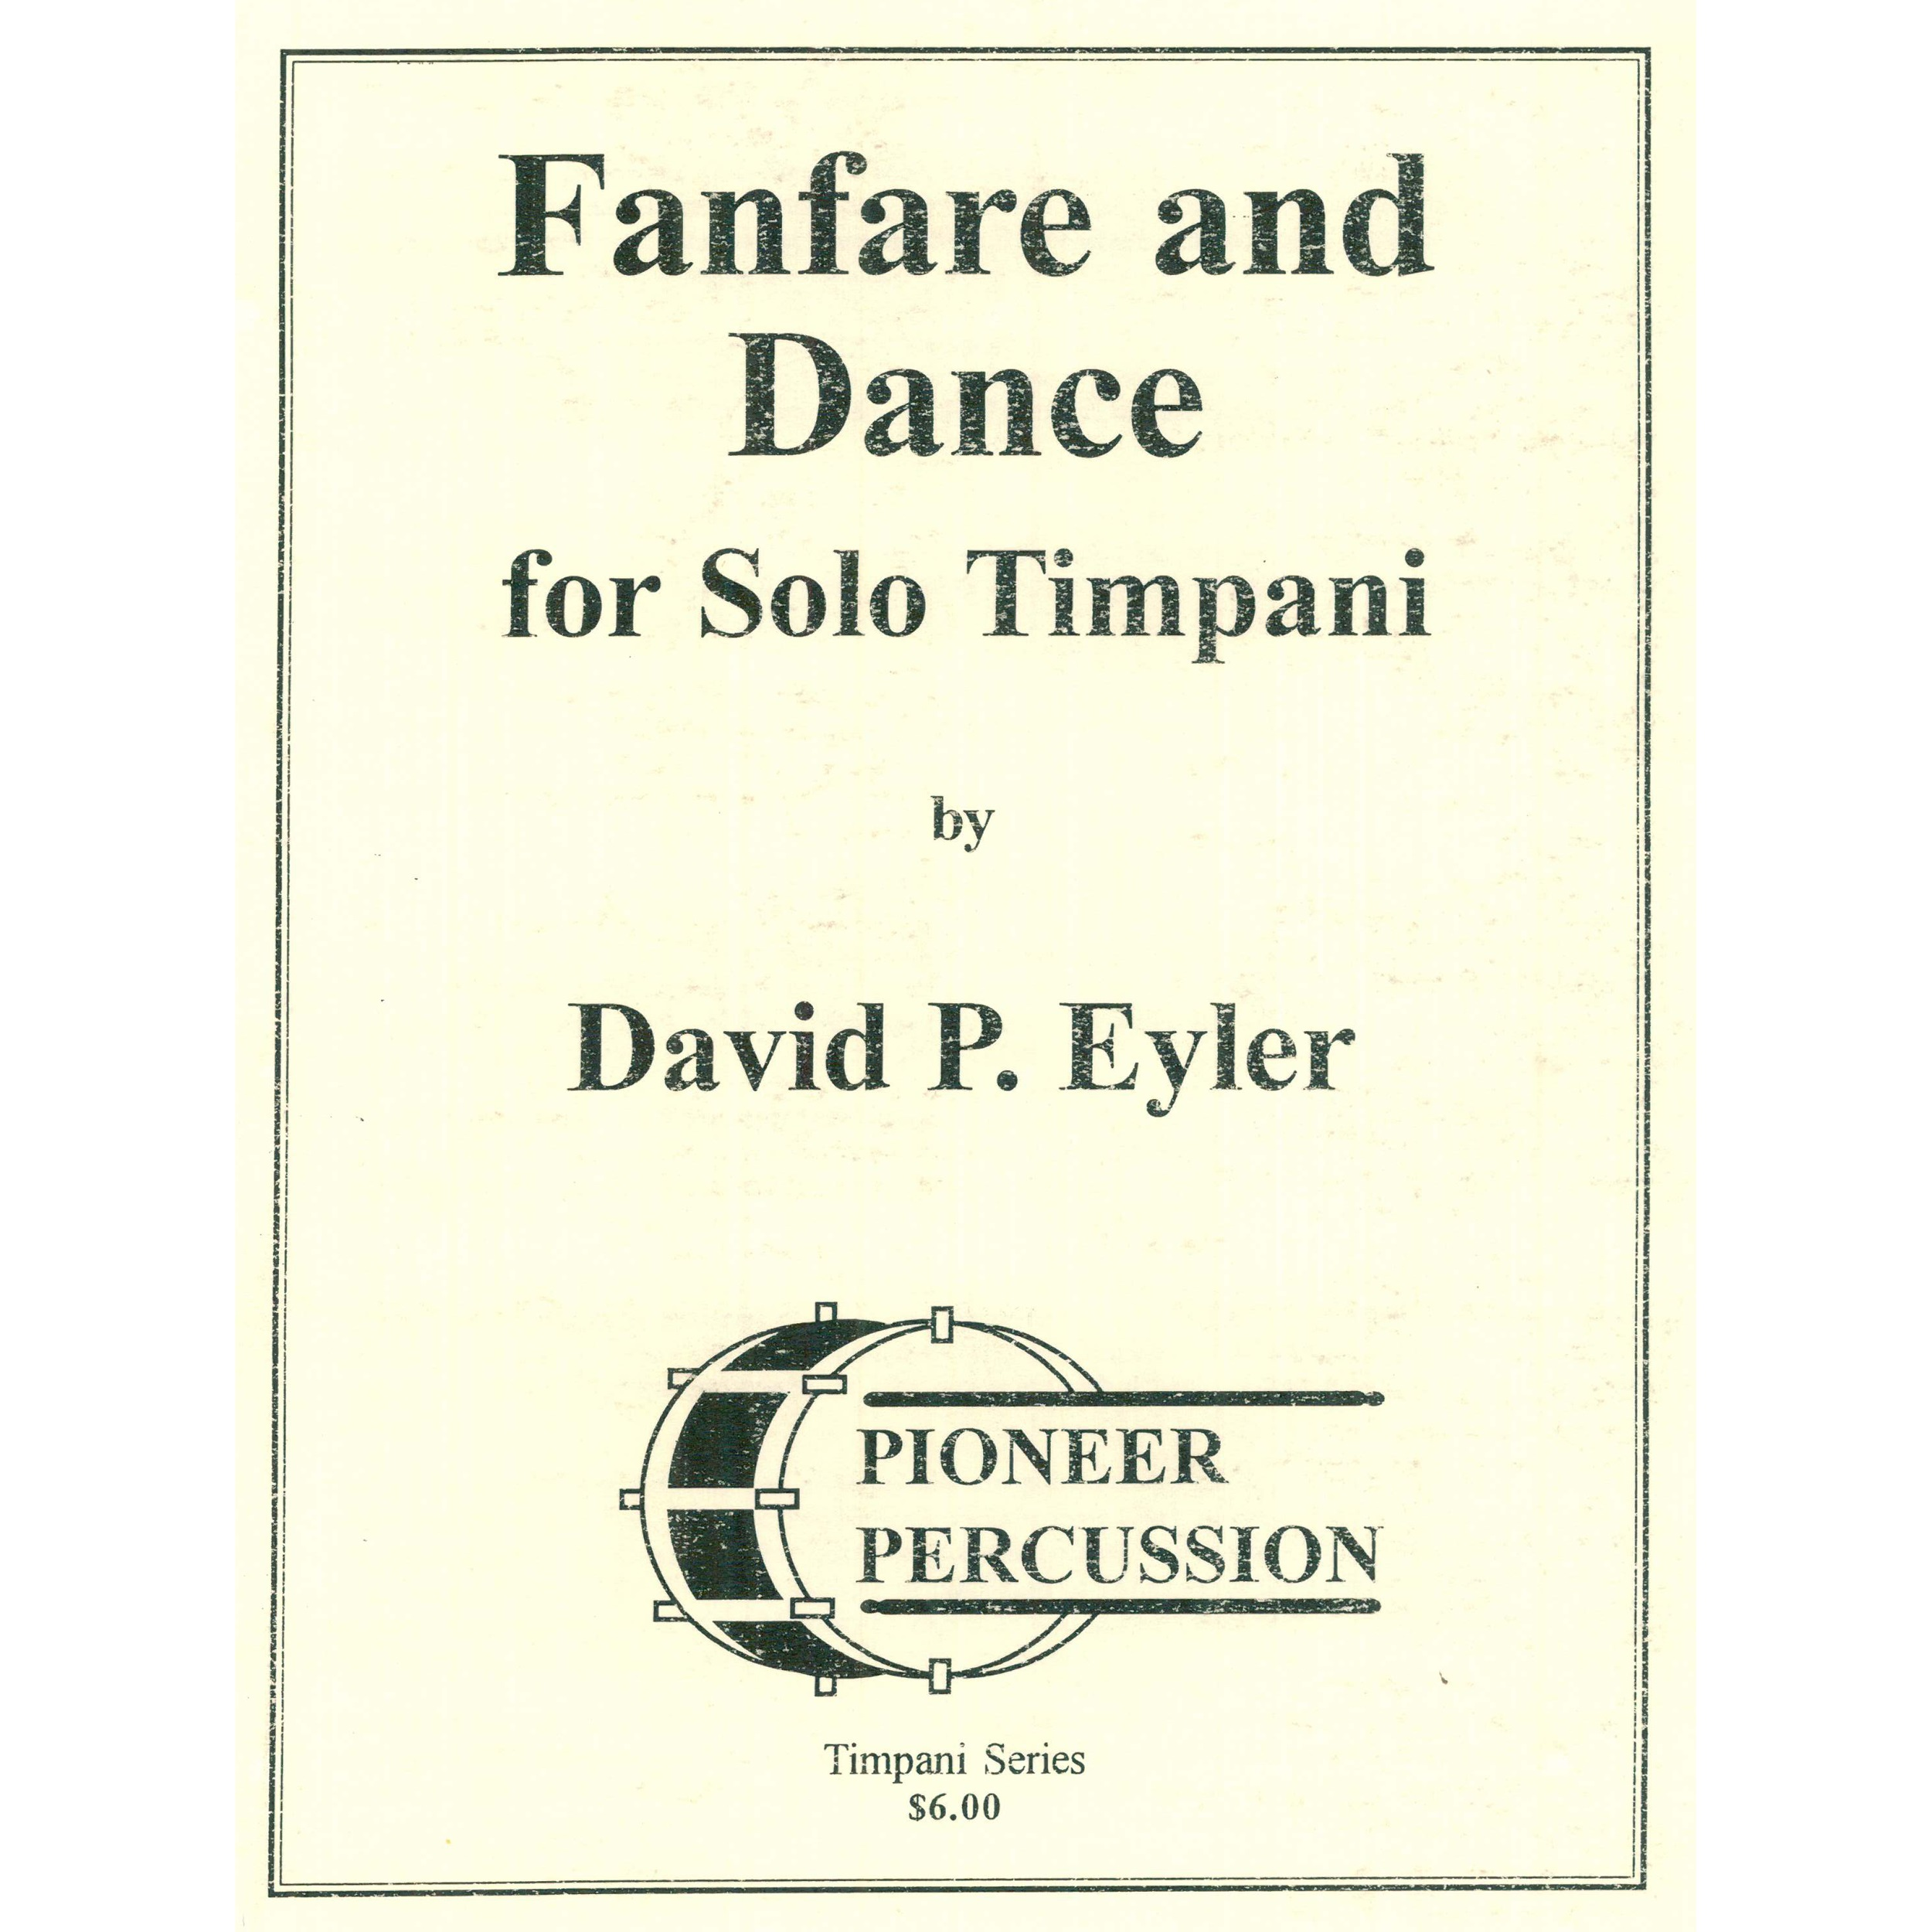 Fanfare and Dance by David Eyler